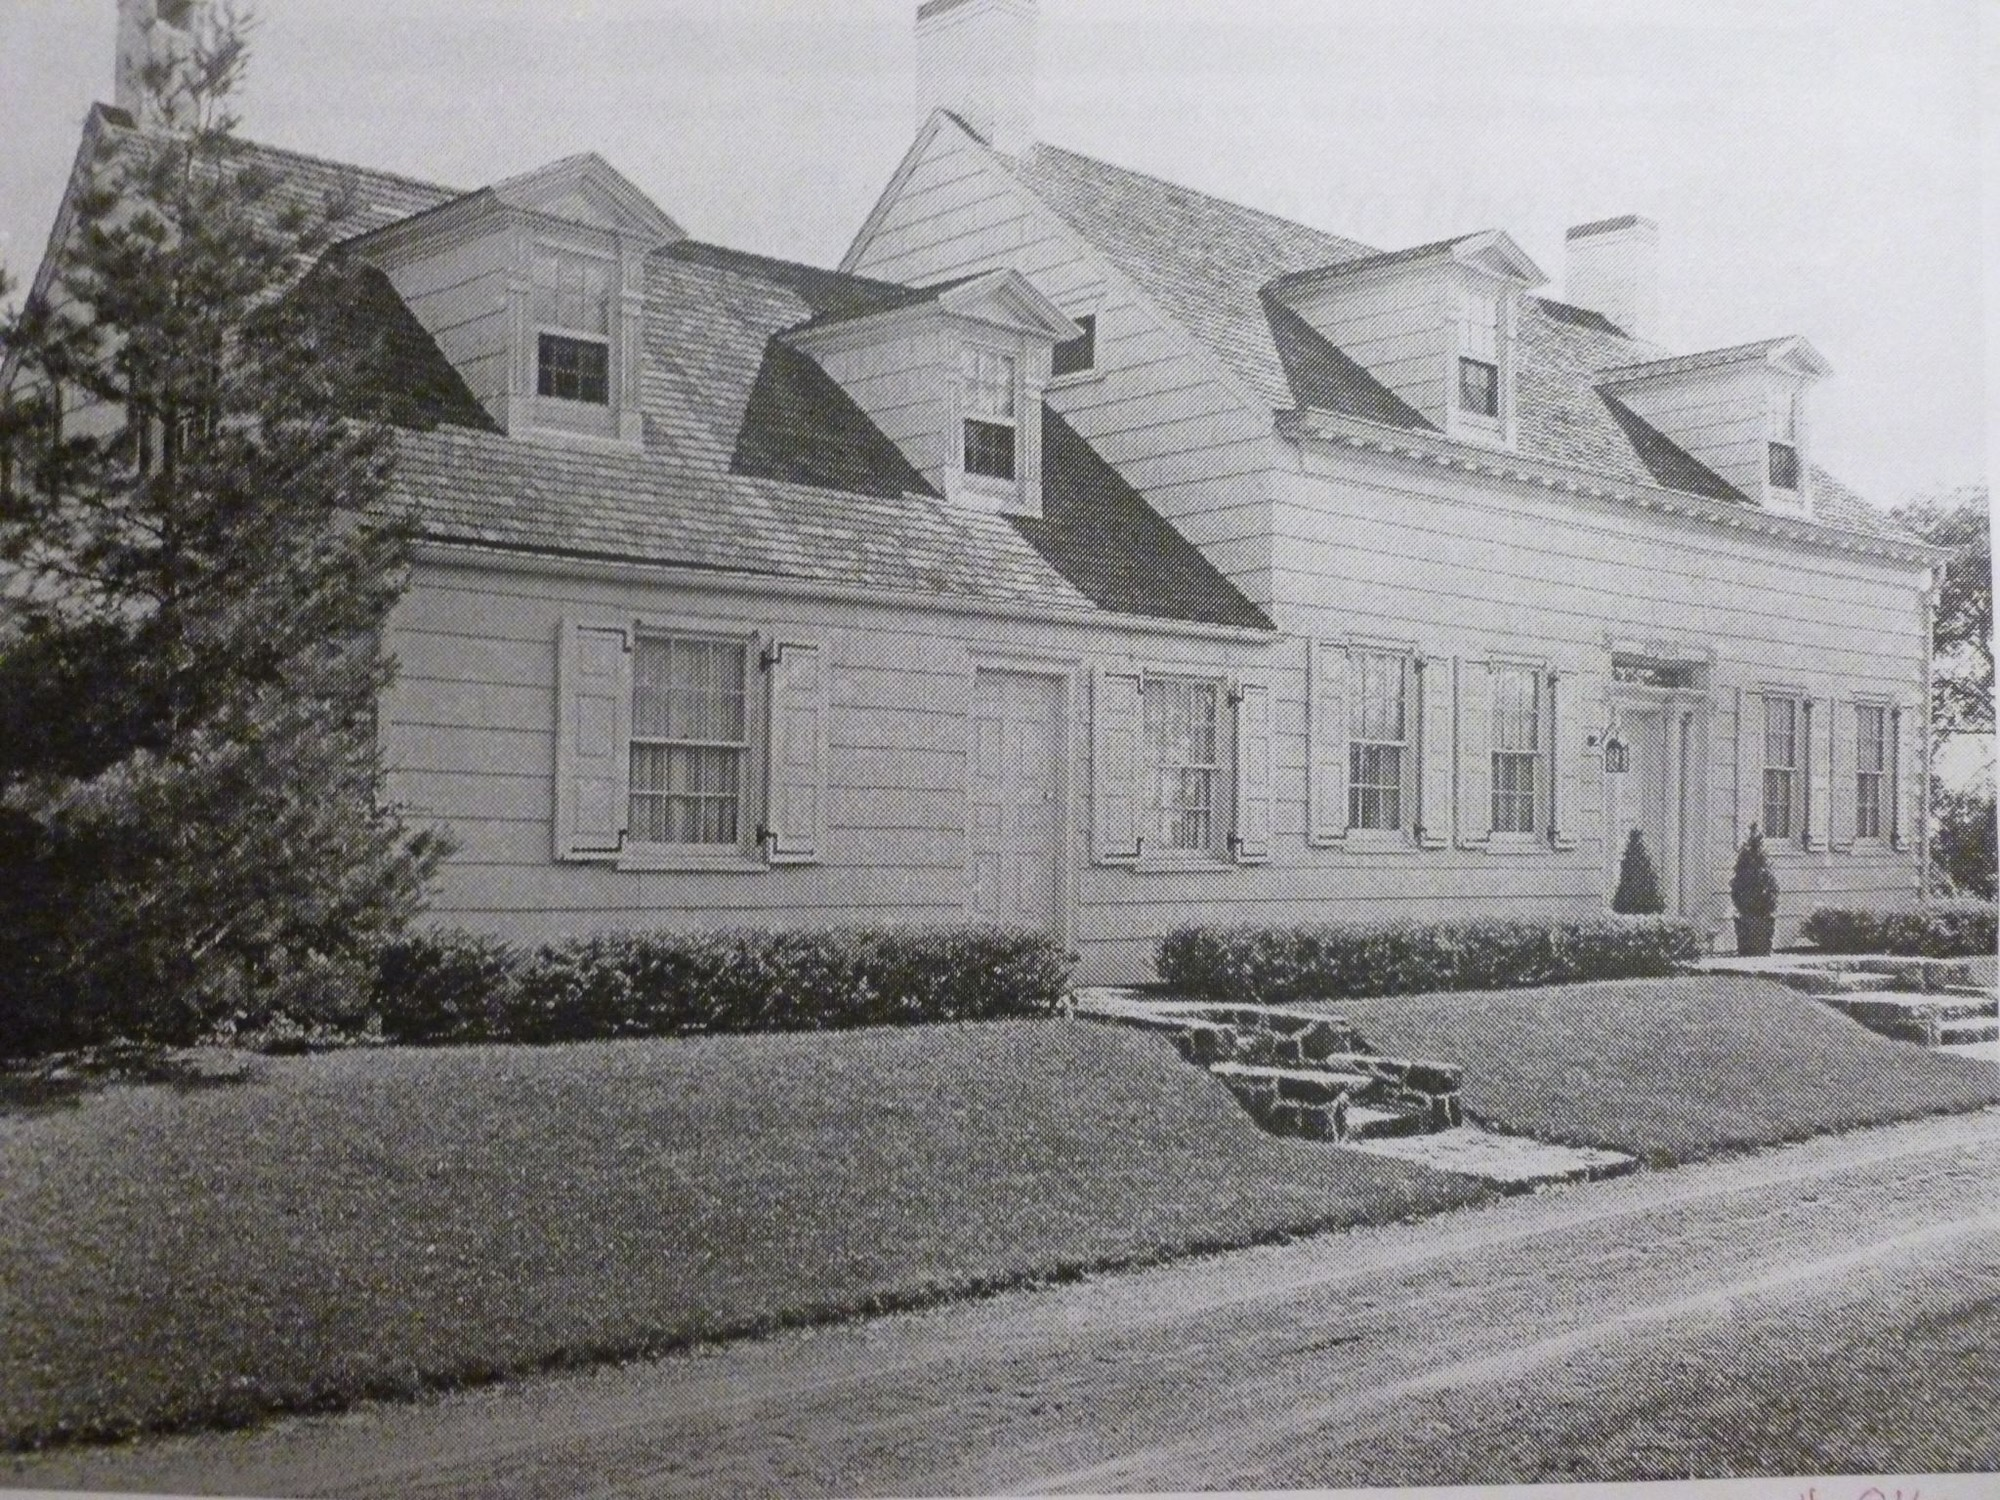 For more than two centuries, the Bedell House was located west of Mayfair Avenue in West Hempstead. It was transplanted to Old Bethpage Village Restoration in 1981.